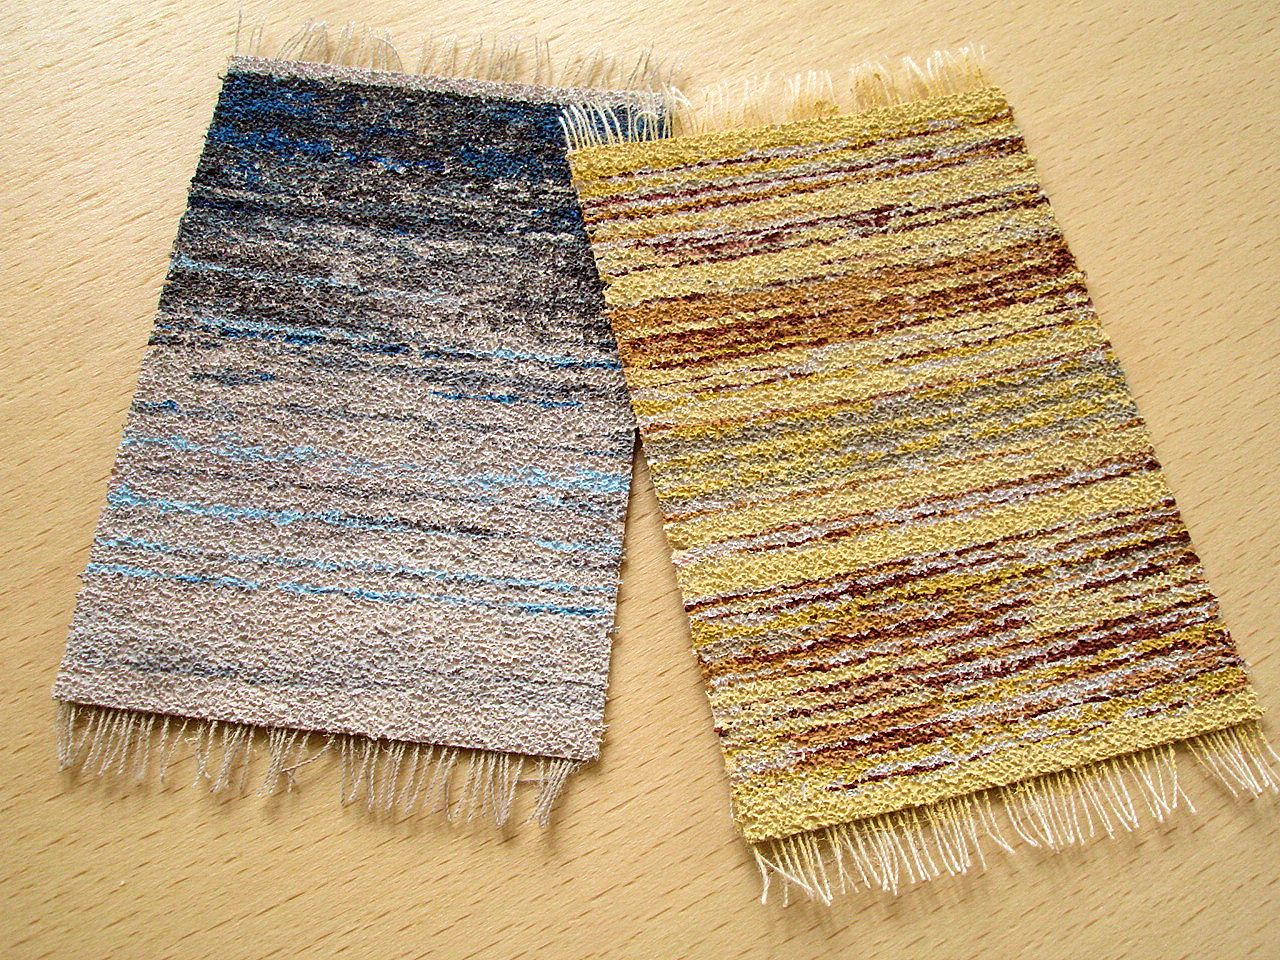 Bristol Weaving Mill, Rag Rugs ('Blue Ombre' and 'Yellow & grey'), models by David Neat